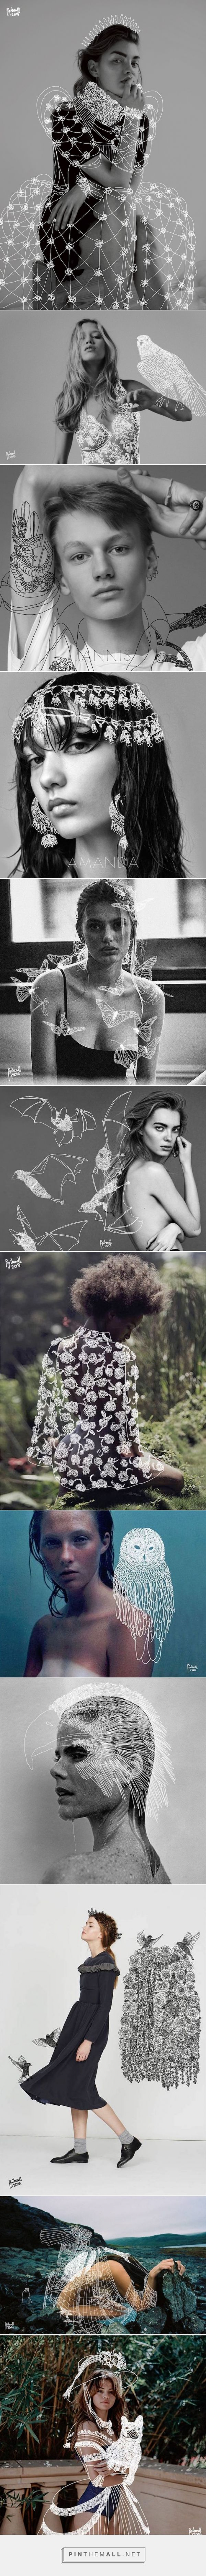 Fashion Photos with Lighthearted Doodles by Dr. Propolus